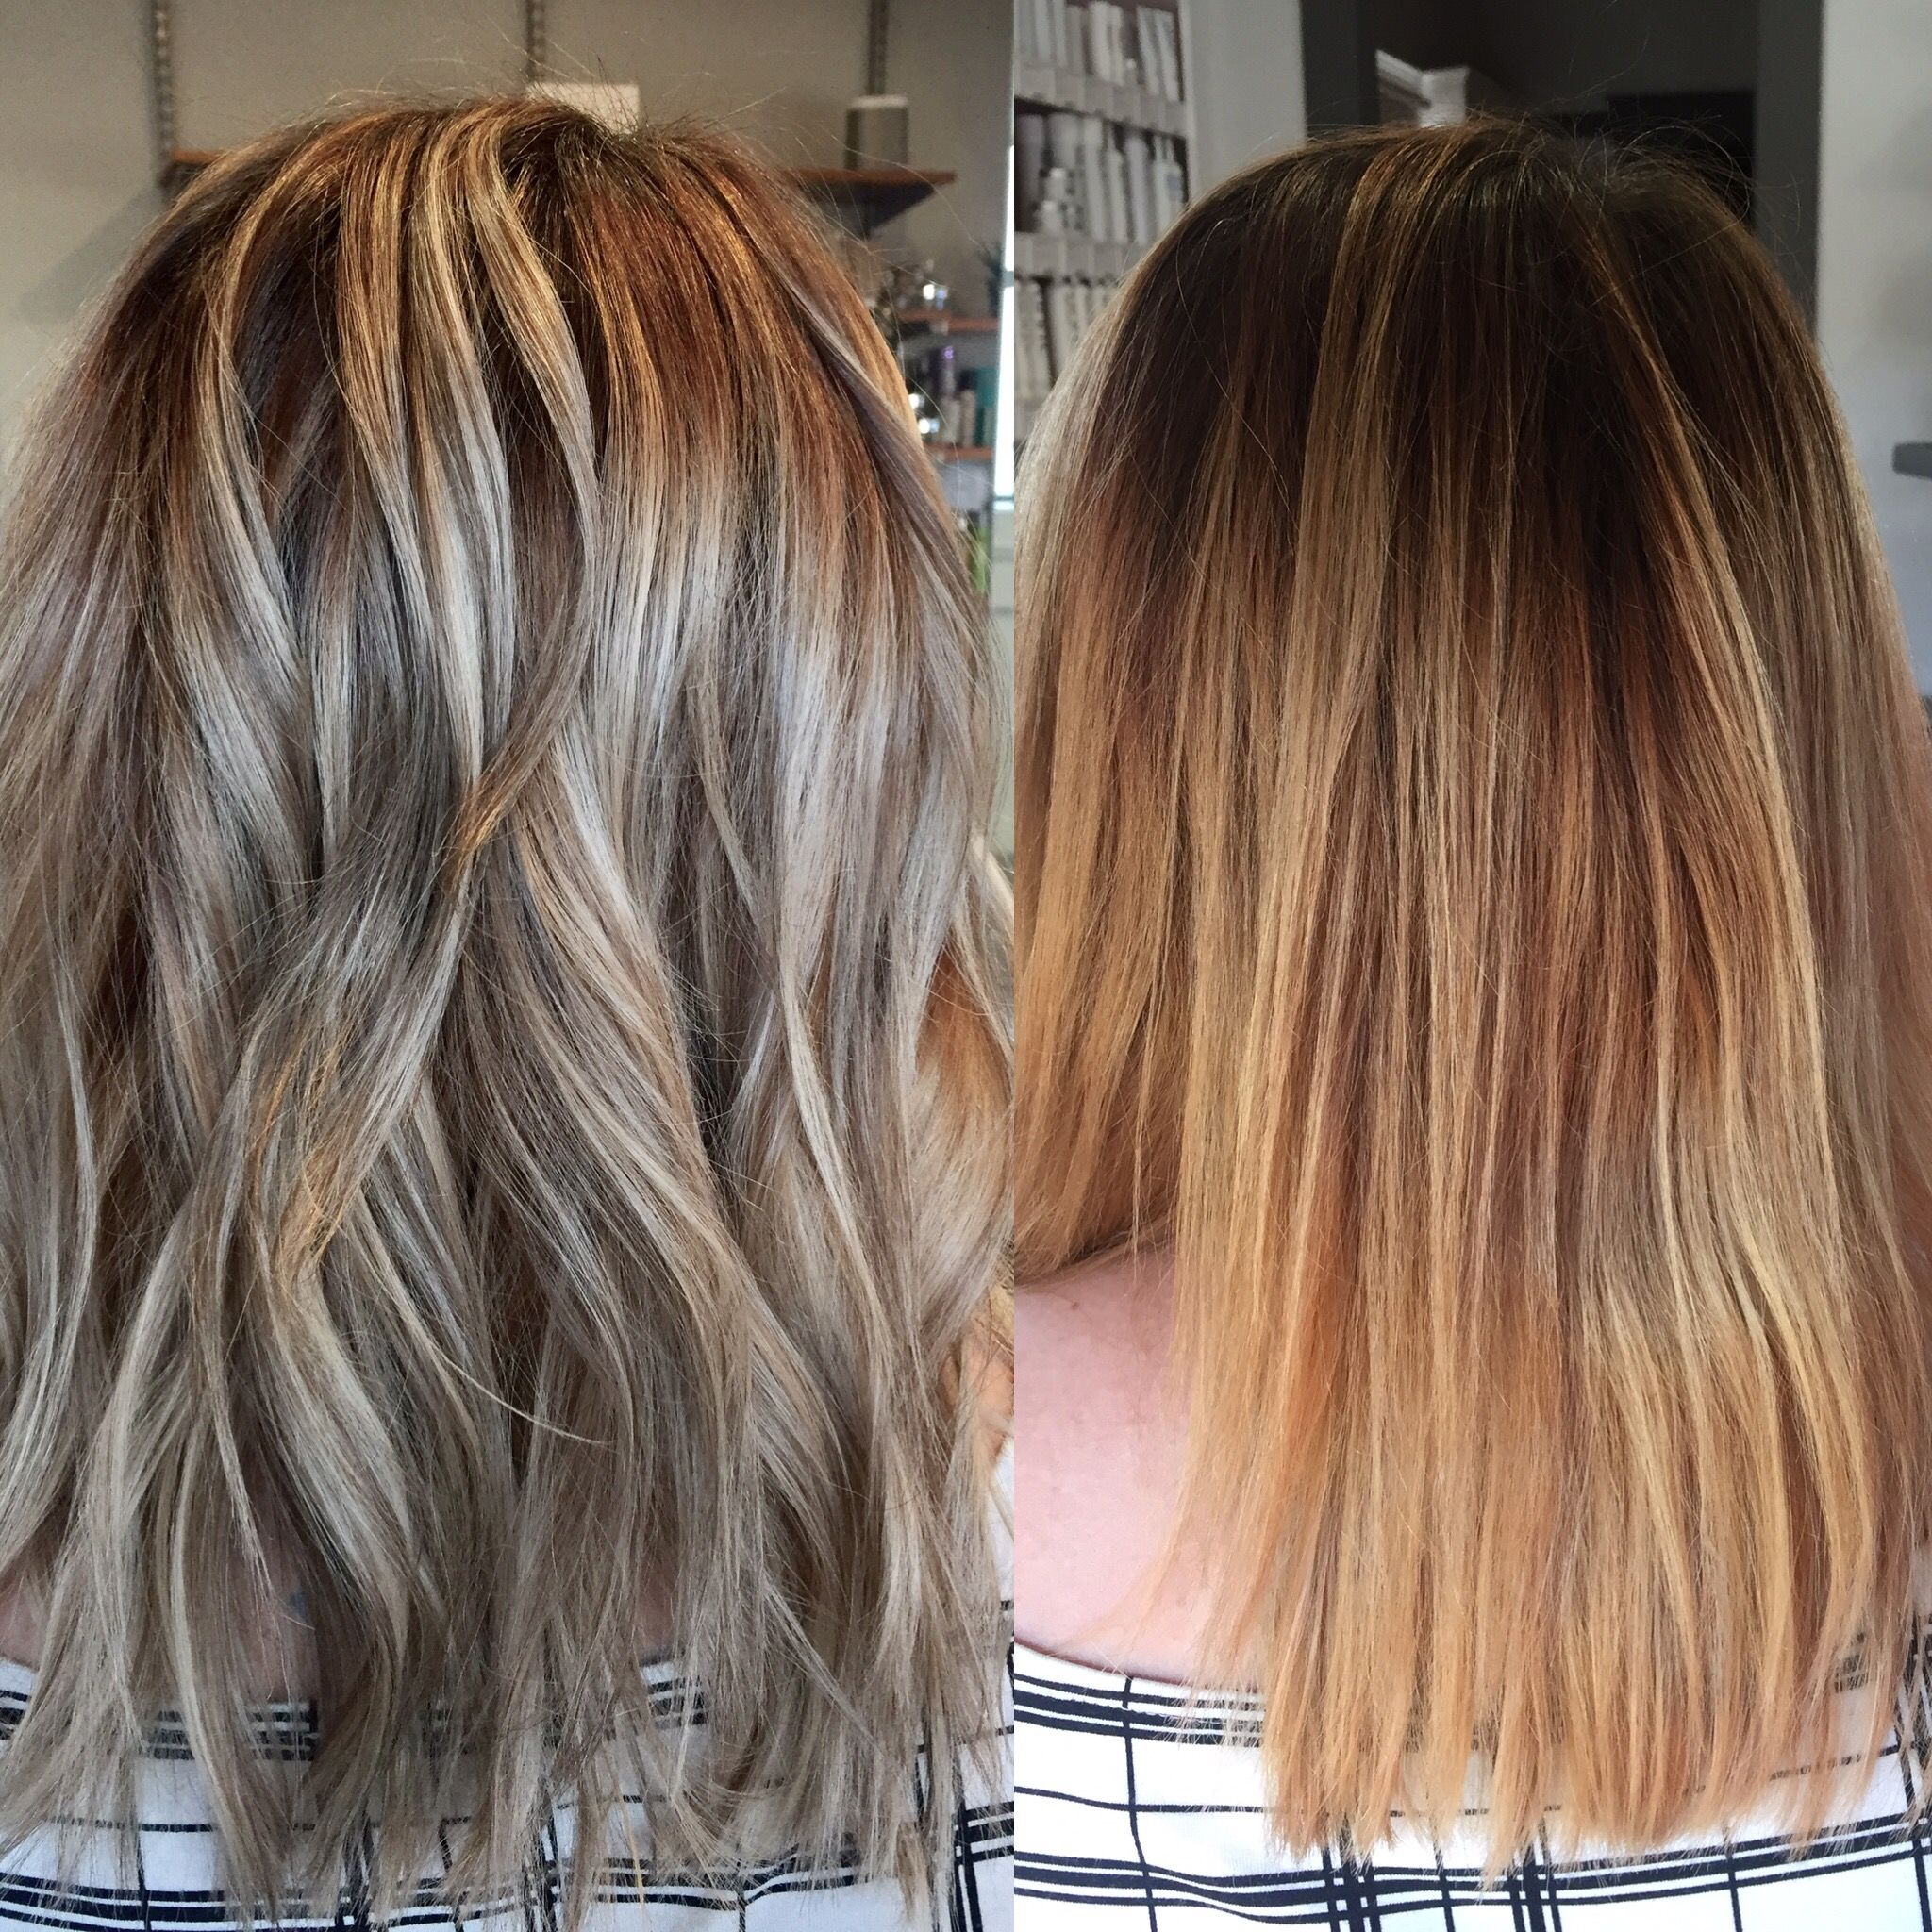 Brassy to classy cooled down her yellow brassy blonde and created